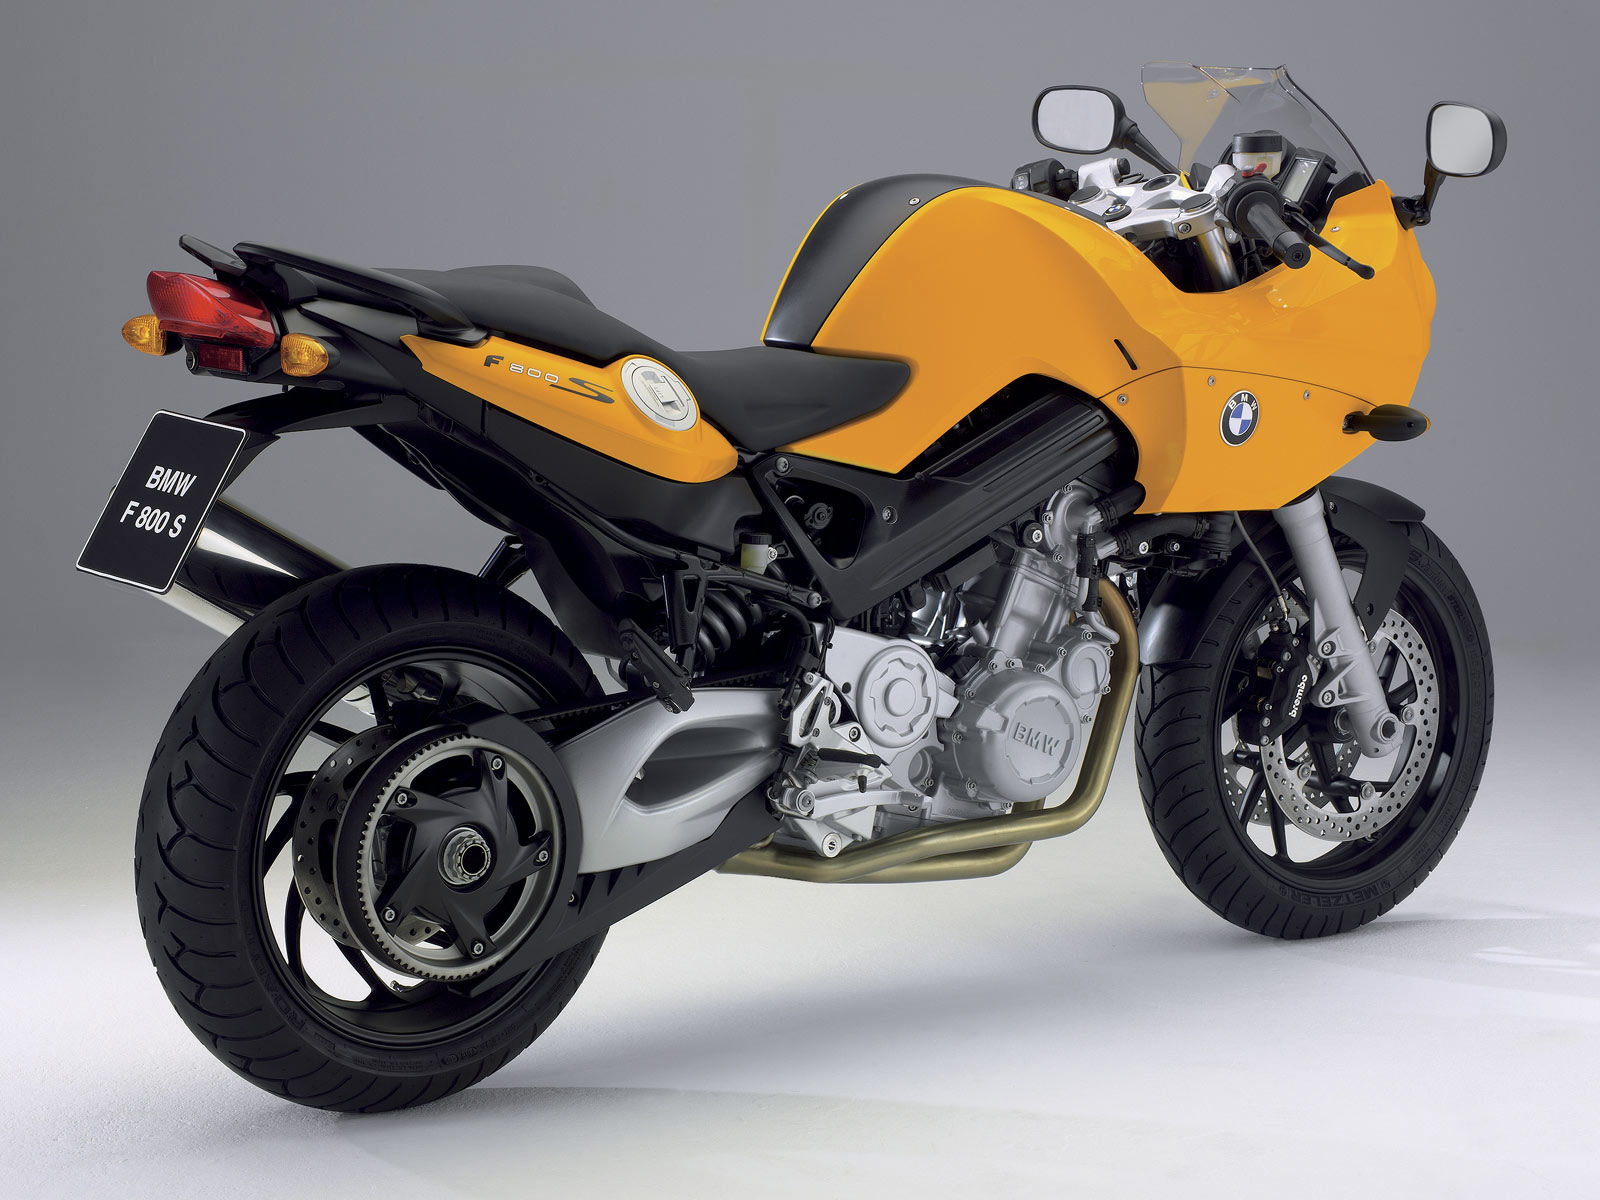 accident lawyers information 2006 bmw f800s desktop wallpaper. Black Bedroom Furniture Sets. Home Design Ideas